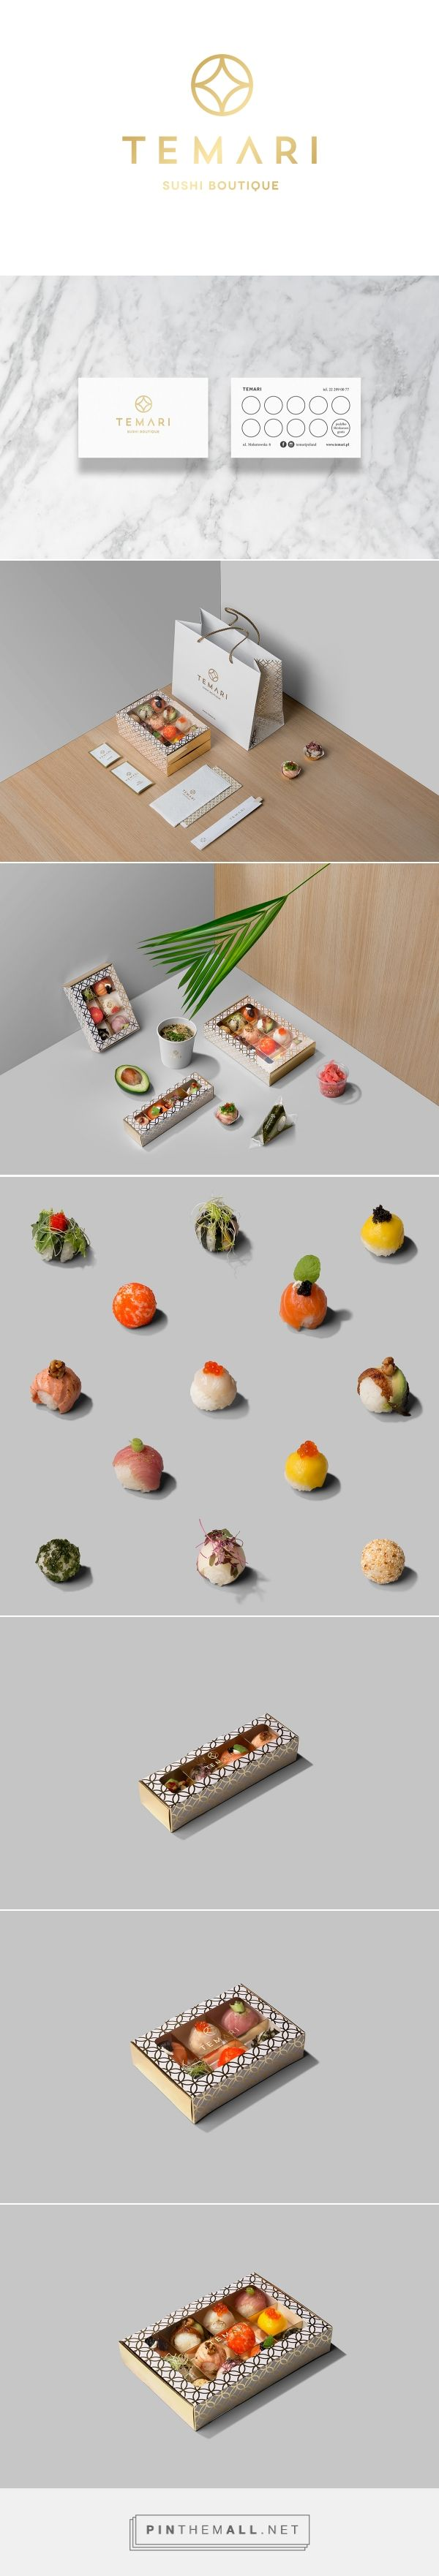 """TEMΛRI packaging on Behance by LANGE & LANGE Warsaw, Poland curated by Packaging Diva PD. Luxury """"TEMARI"""" Sushi Boutique Japanese Symbol Of Perfection Temari means handmade bal (""""te"""" - hand, """"mari"""" - ball)."""